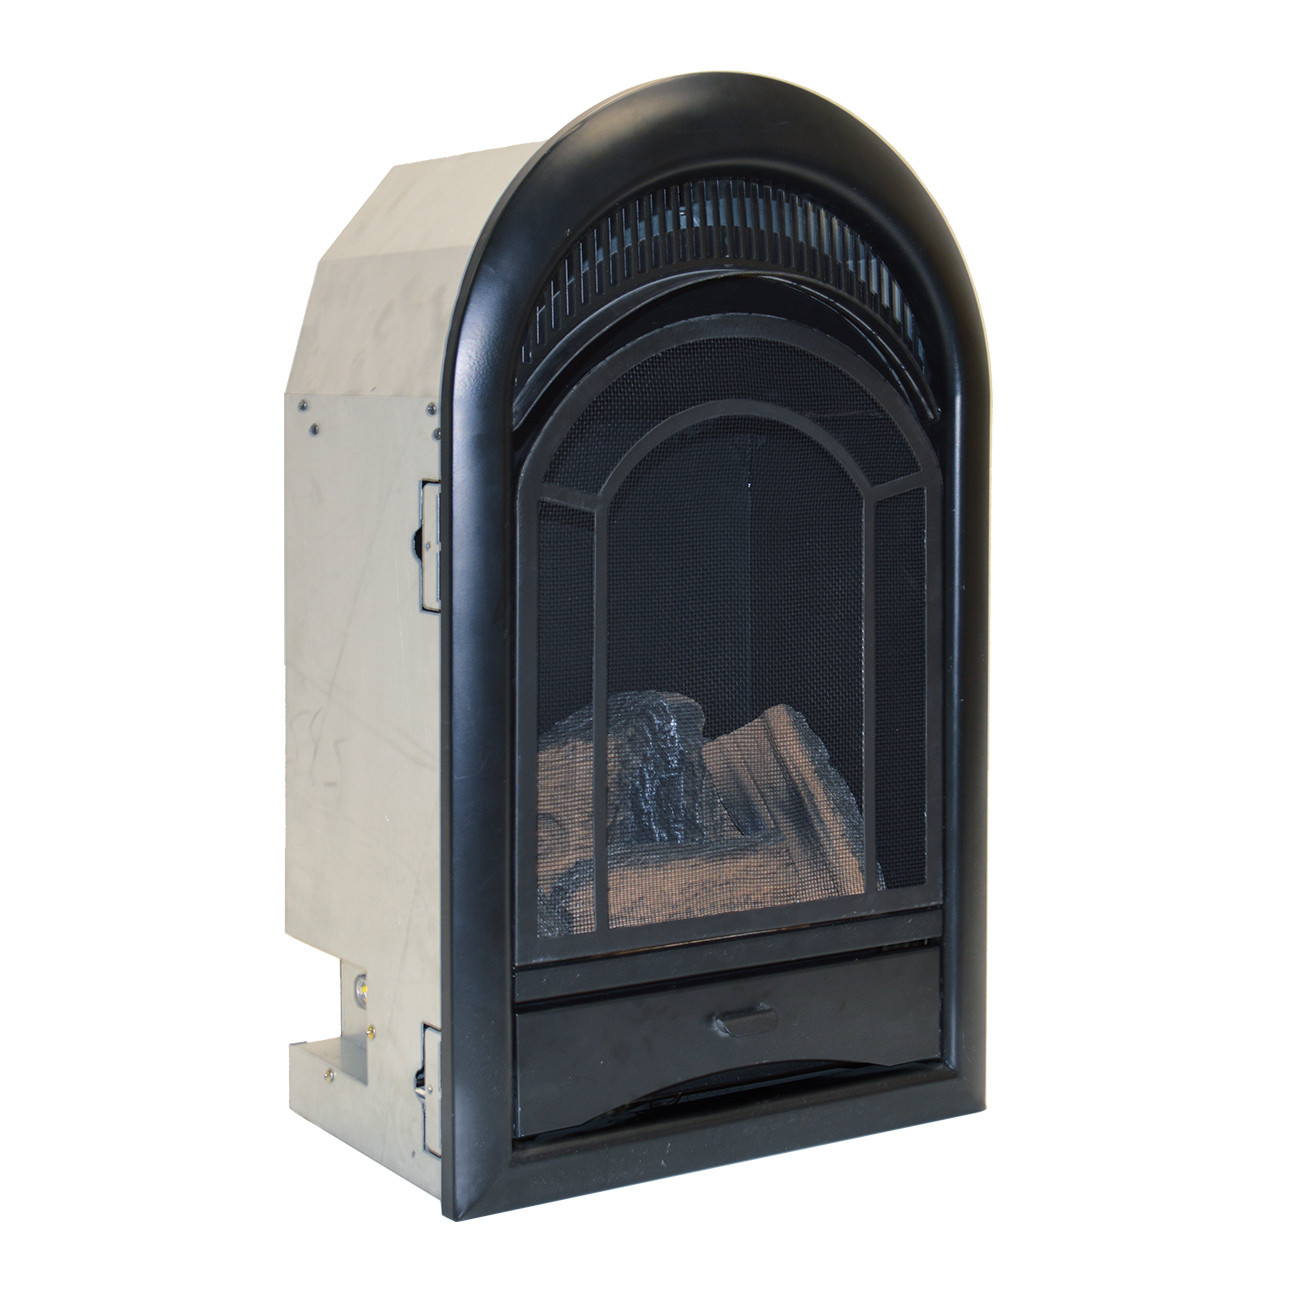 Free Fireplace Insert Ventless Fireplace Insert Thermostat Control Arched Door 10 000 Btu Model Pcs100t